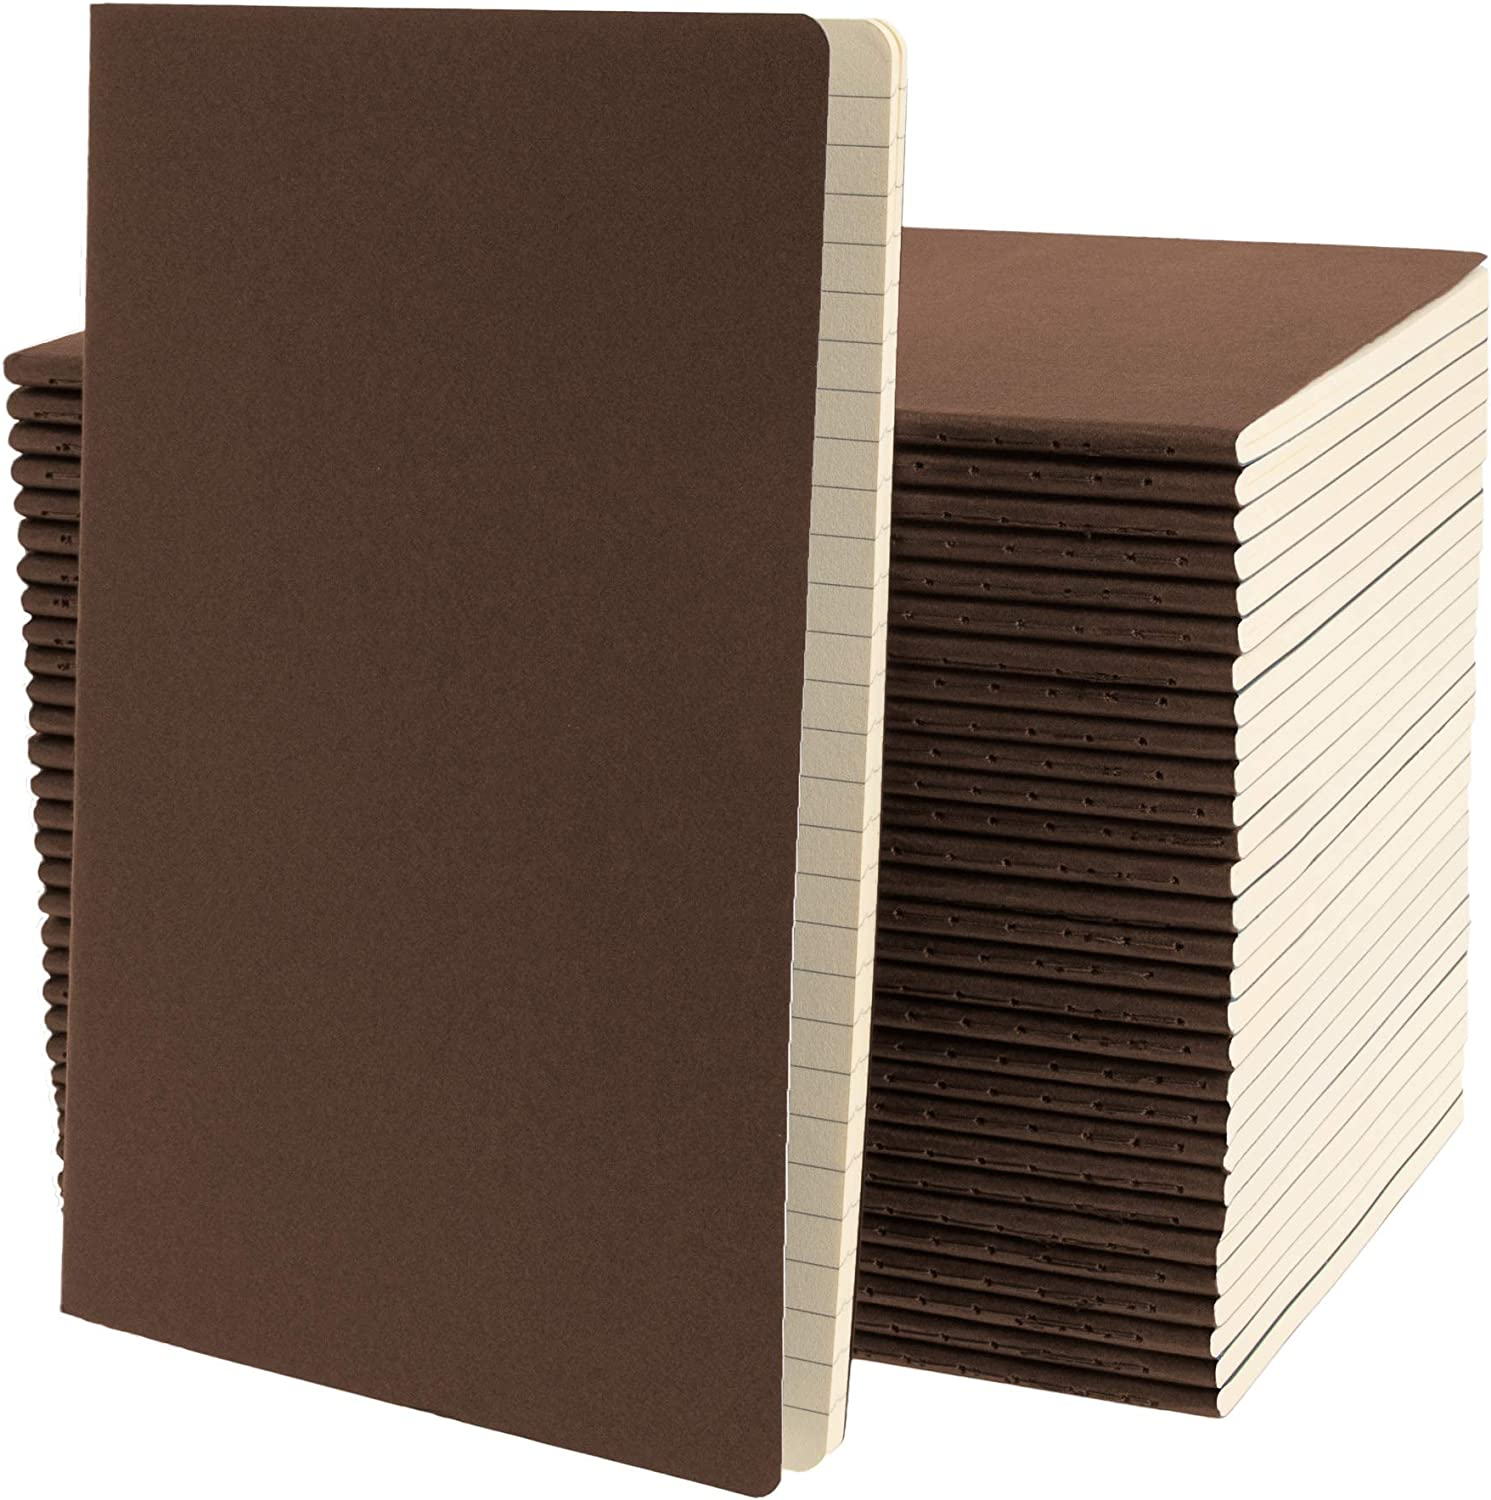 Simply Genius 30 New product Pack Travel Notebook Journal Chicago Mall Travelers Set: